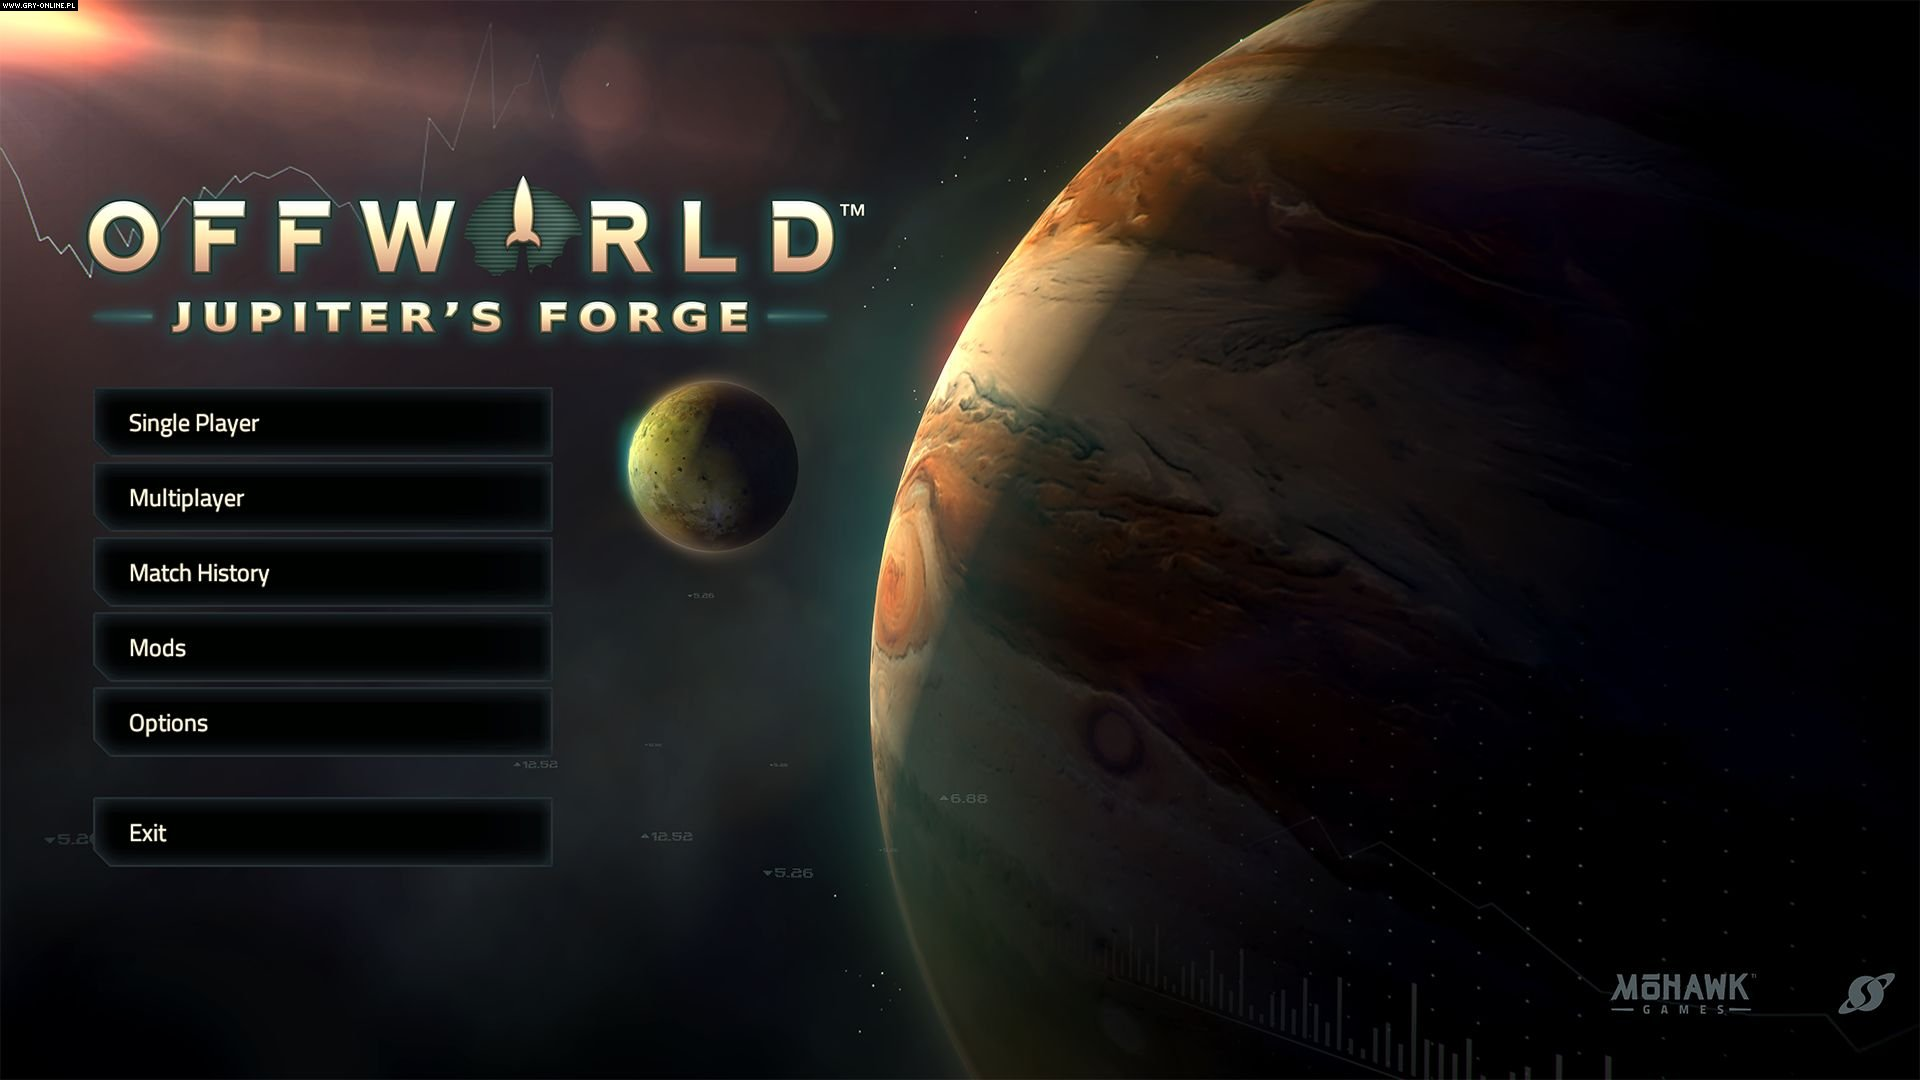 Offworld Trading Company: Jupiter's Forge PC Gry Screen 1/5, Mohawk Games, Stardock Corporation